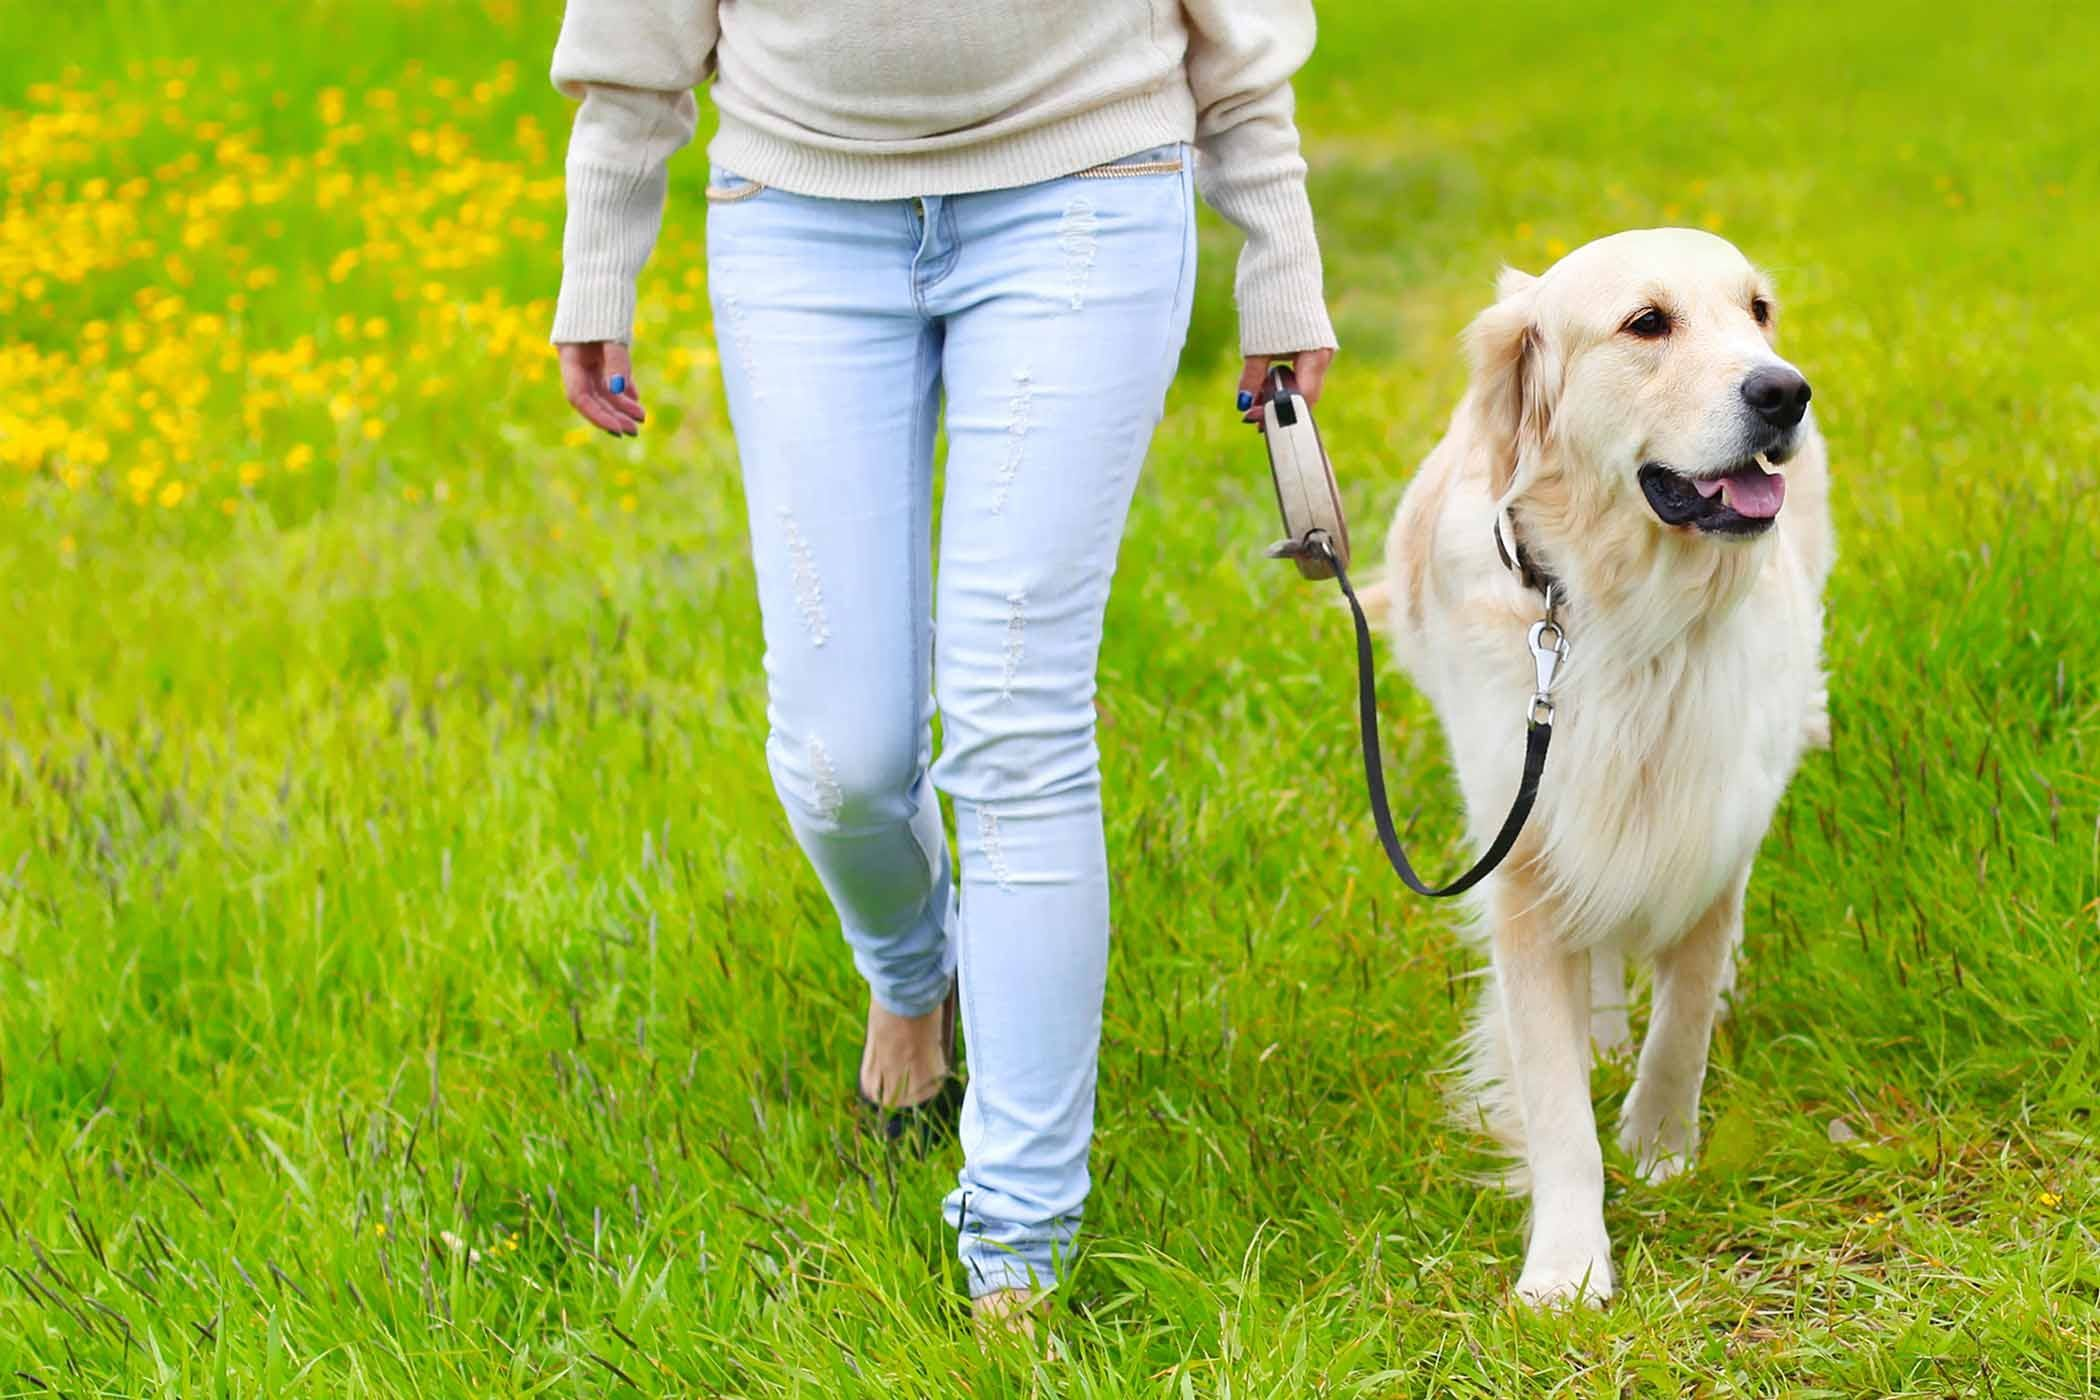 How to train your dog to heel dog clicker training